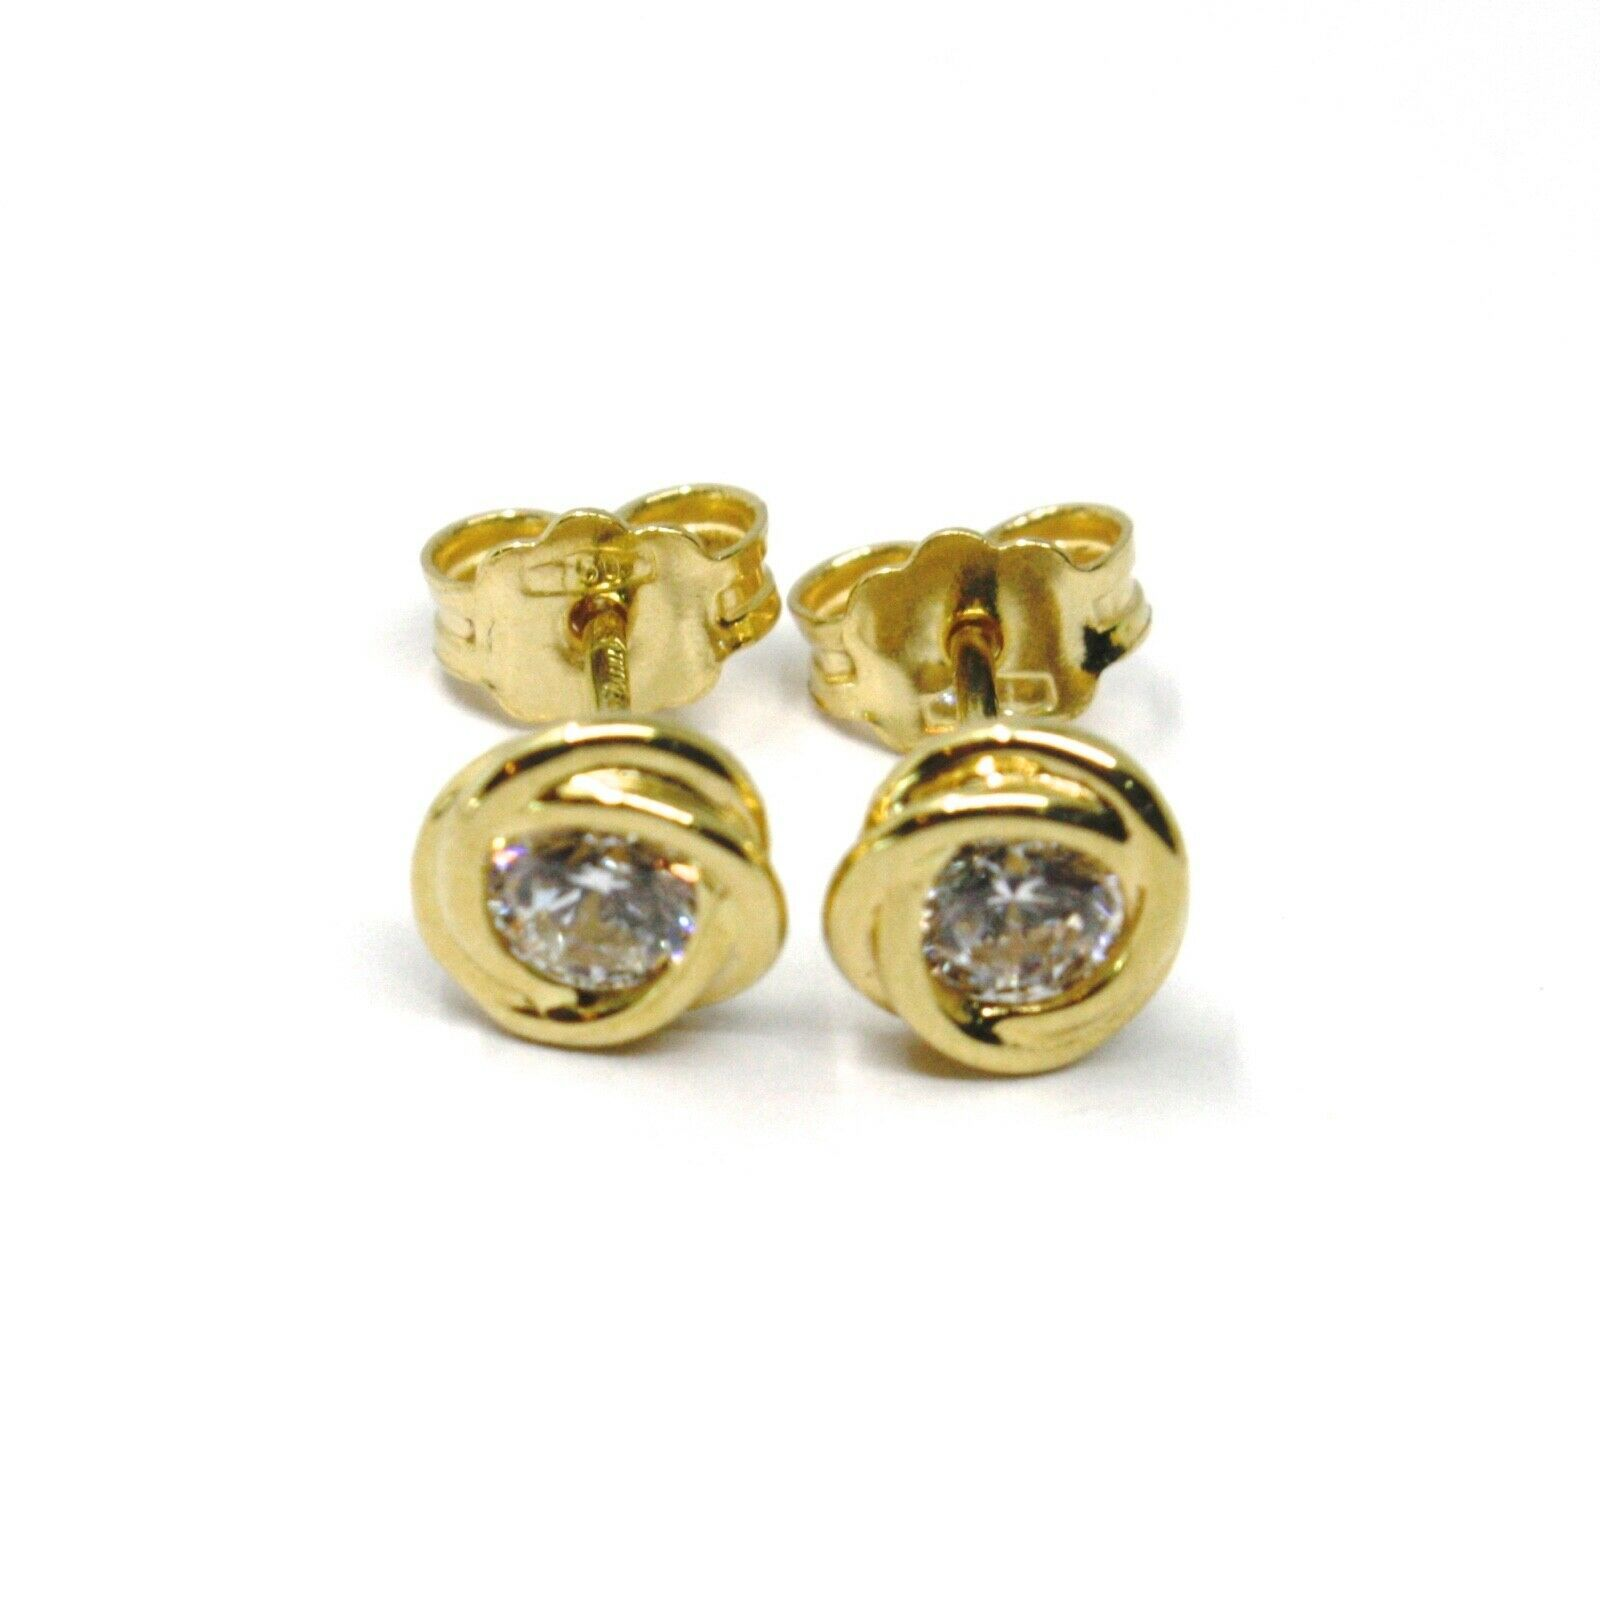 18K YELLOW GOLD MINI BUTTON EARRINGS CUBIC ZIRCONIA, FLOWER BRAIDED SPIRAL, 6 MM